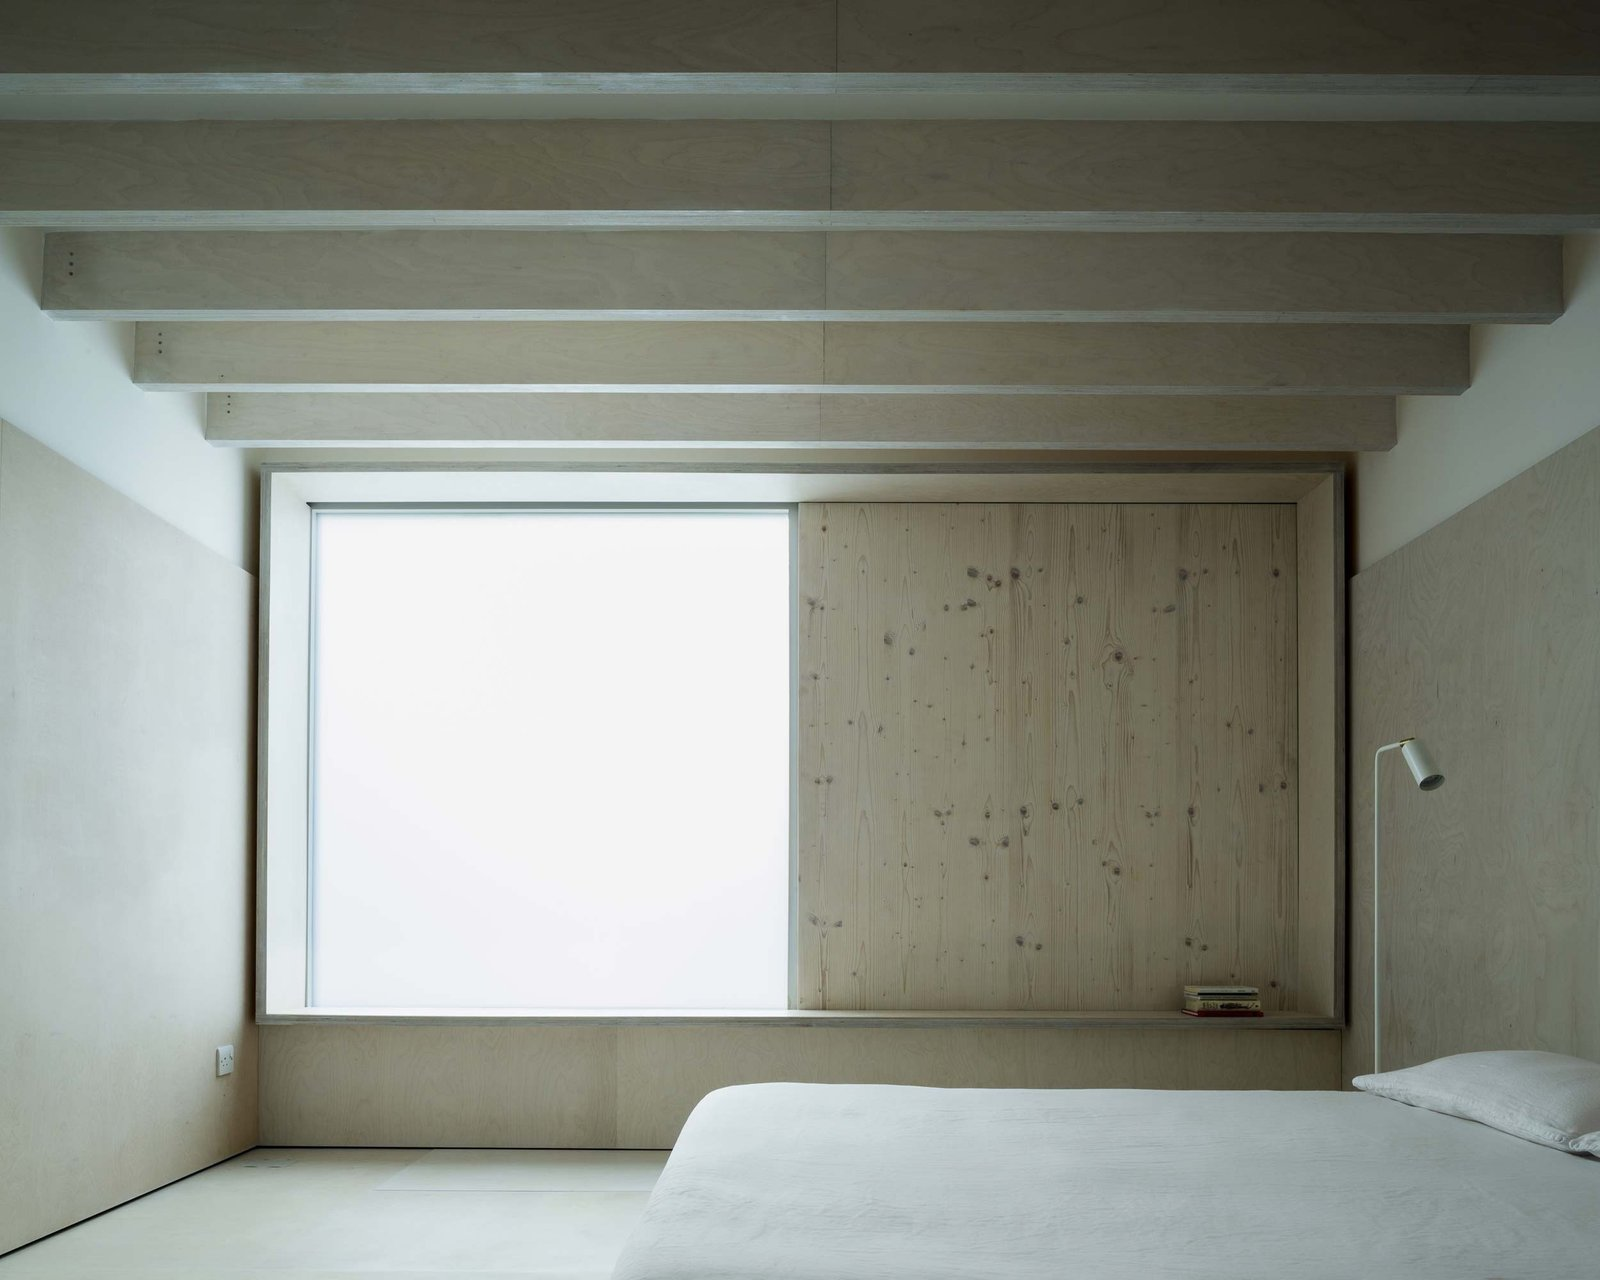 Photo 7 of 7 in Phase II by West Architecture